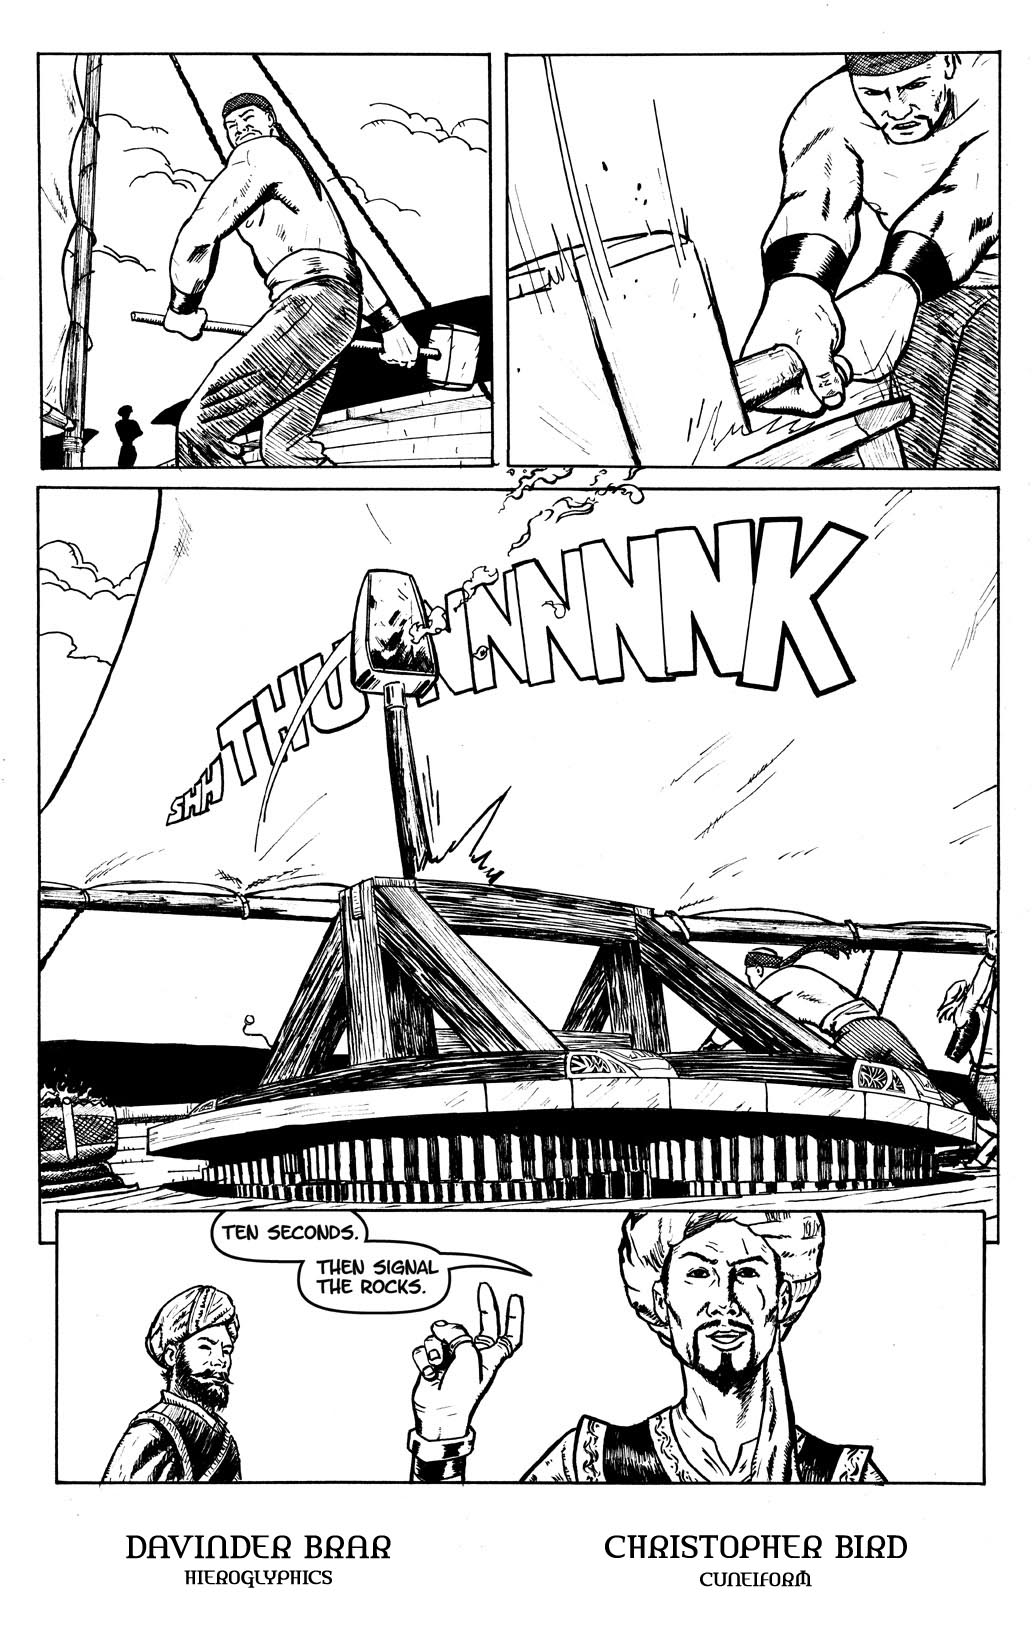 Book 1, page 4